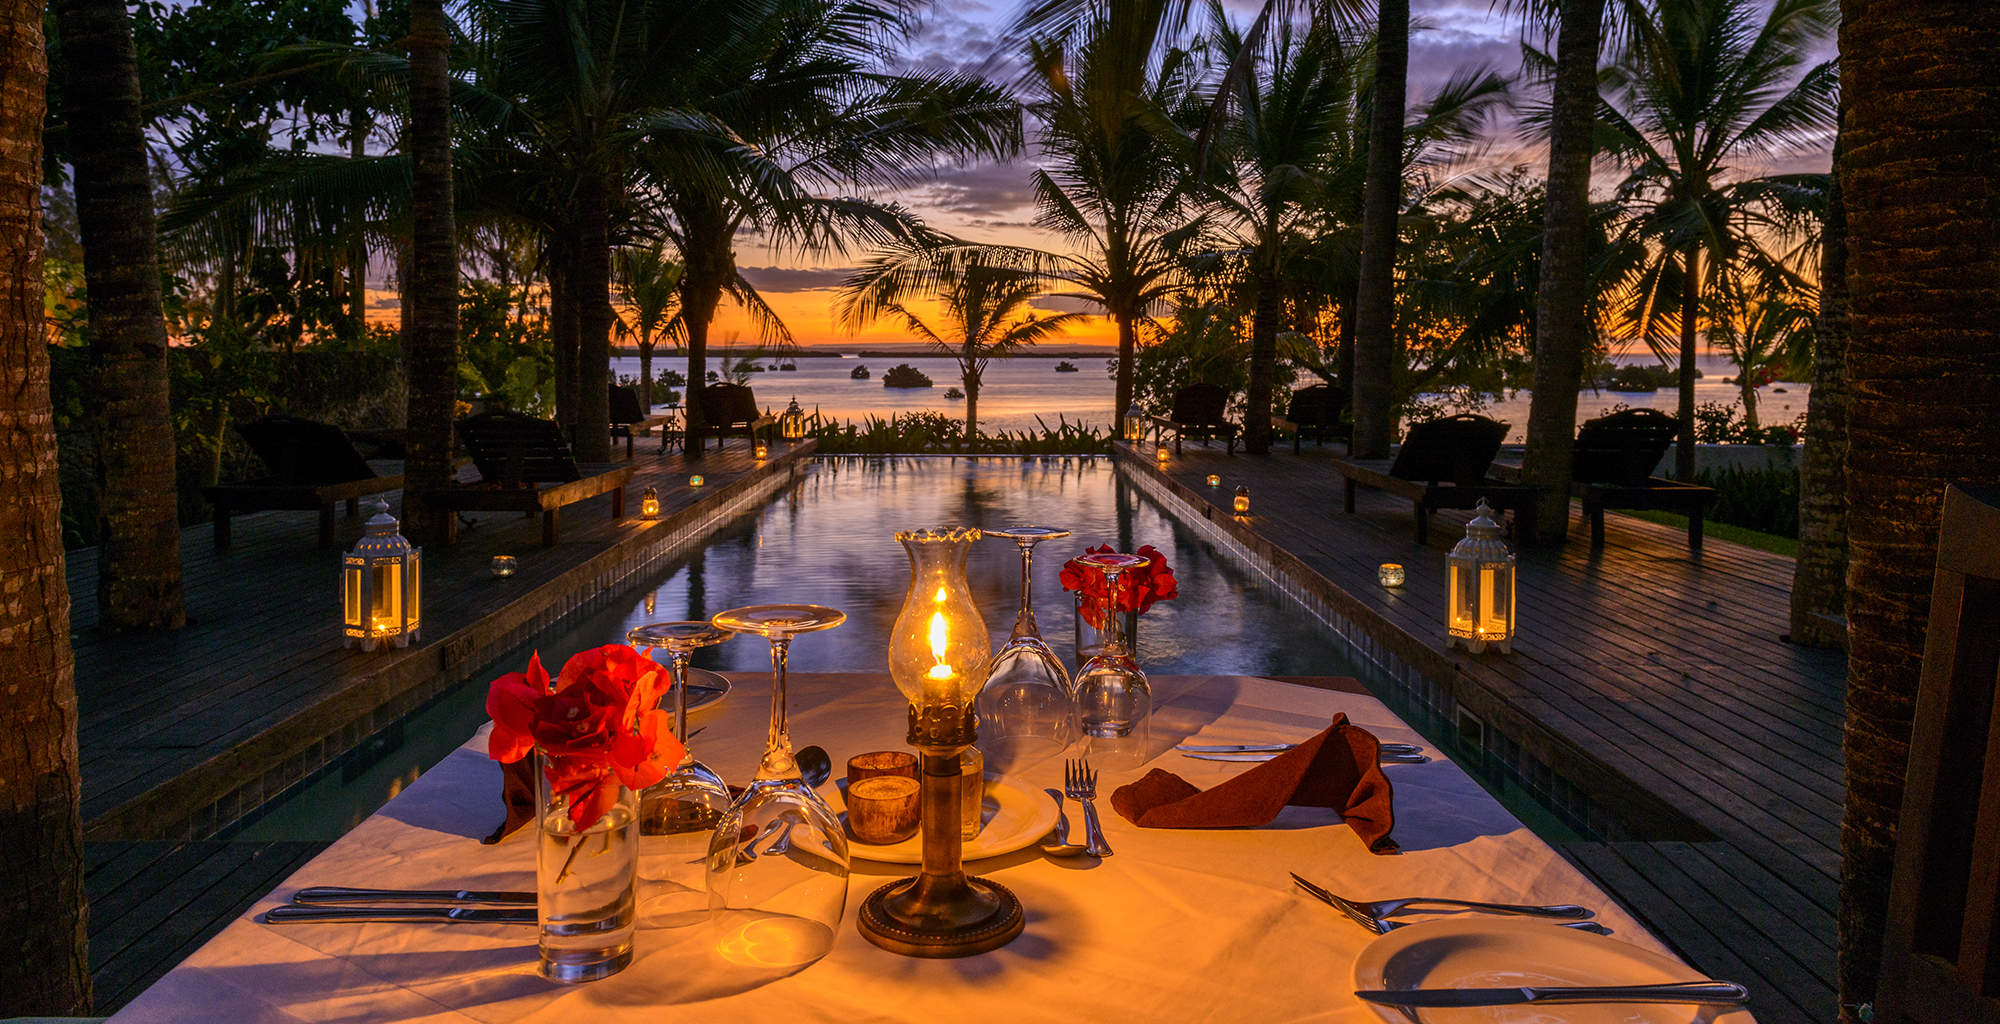 Mozambique-Ibo-Island-Lodge-Dining